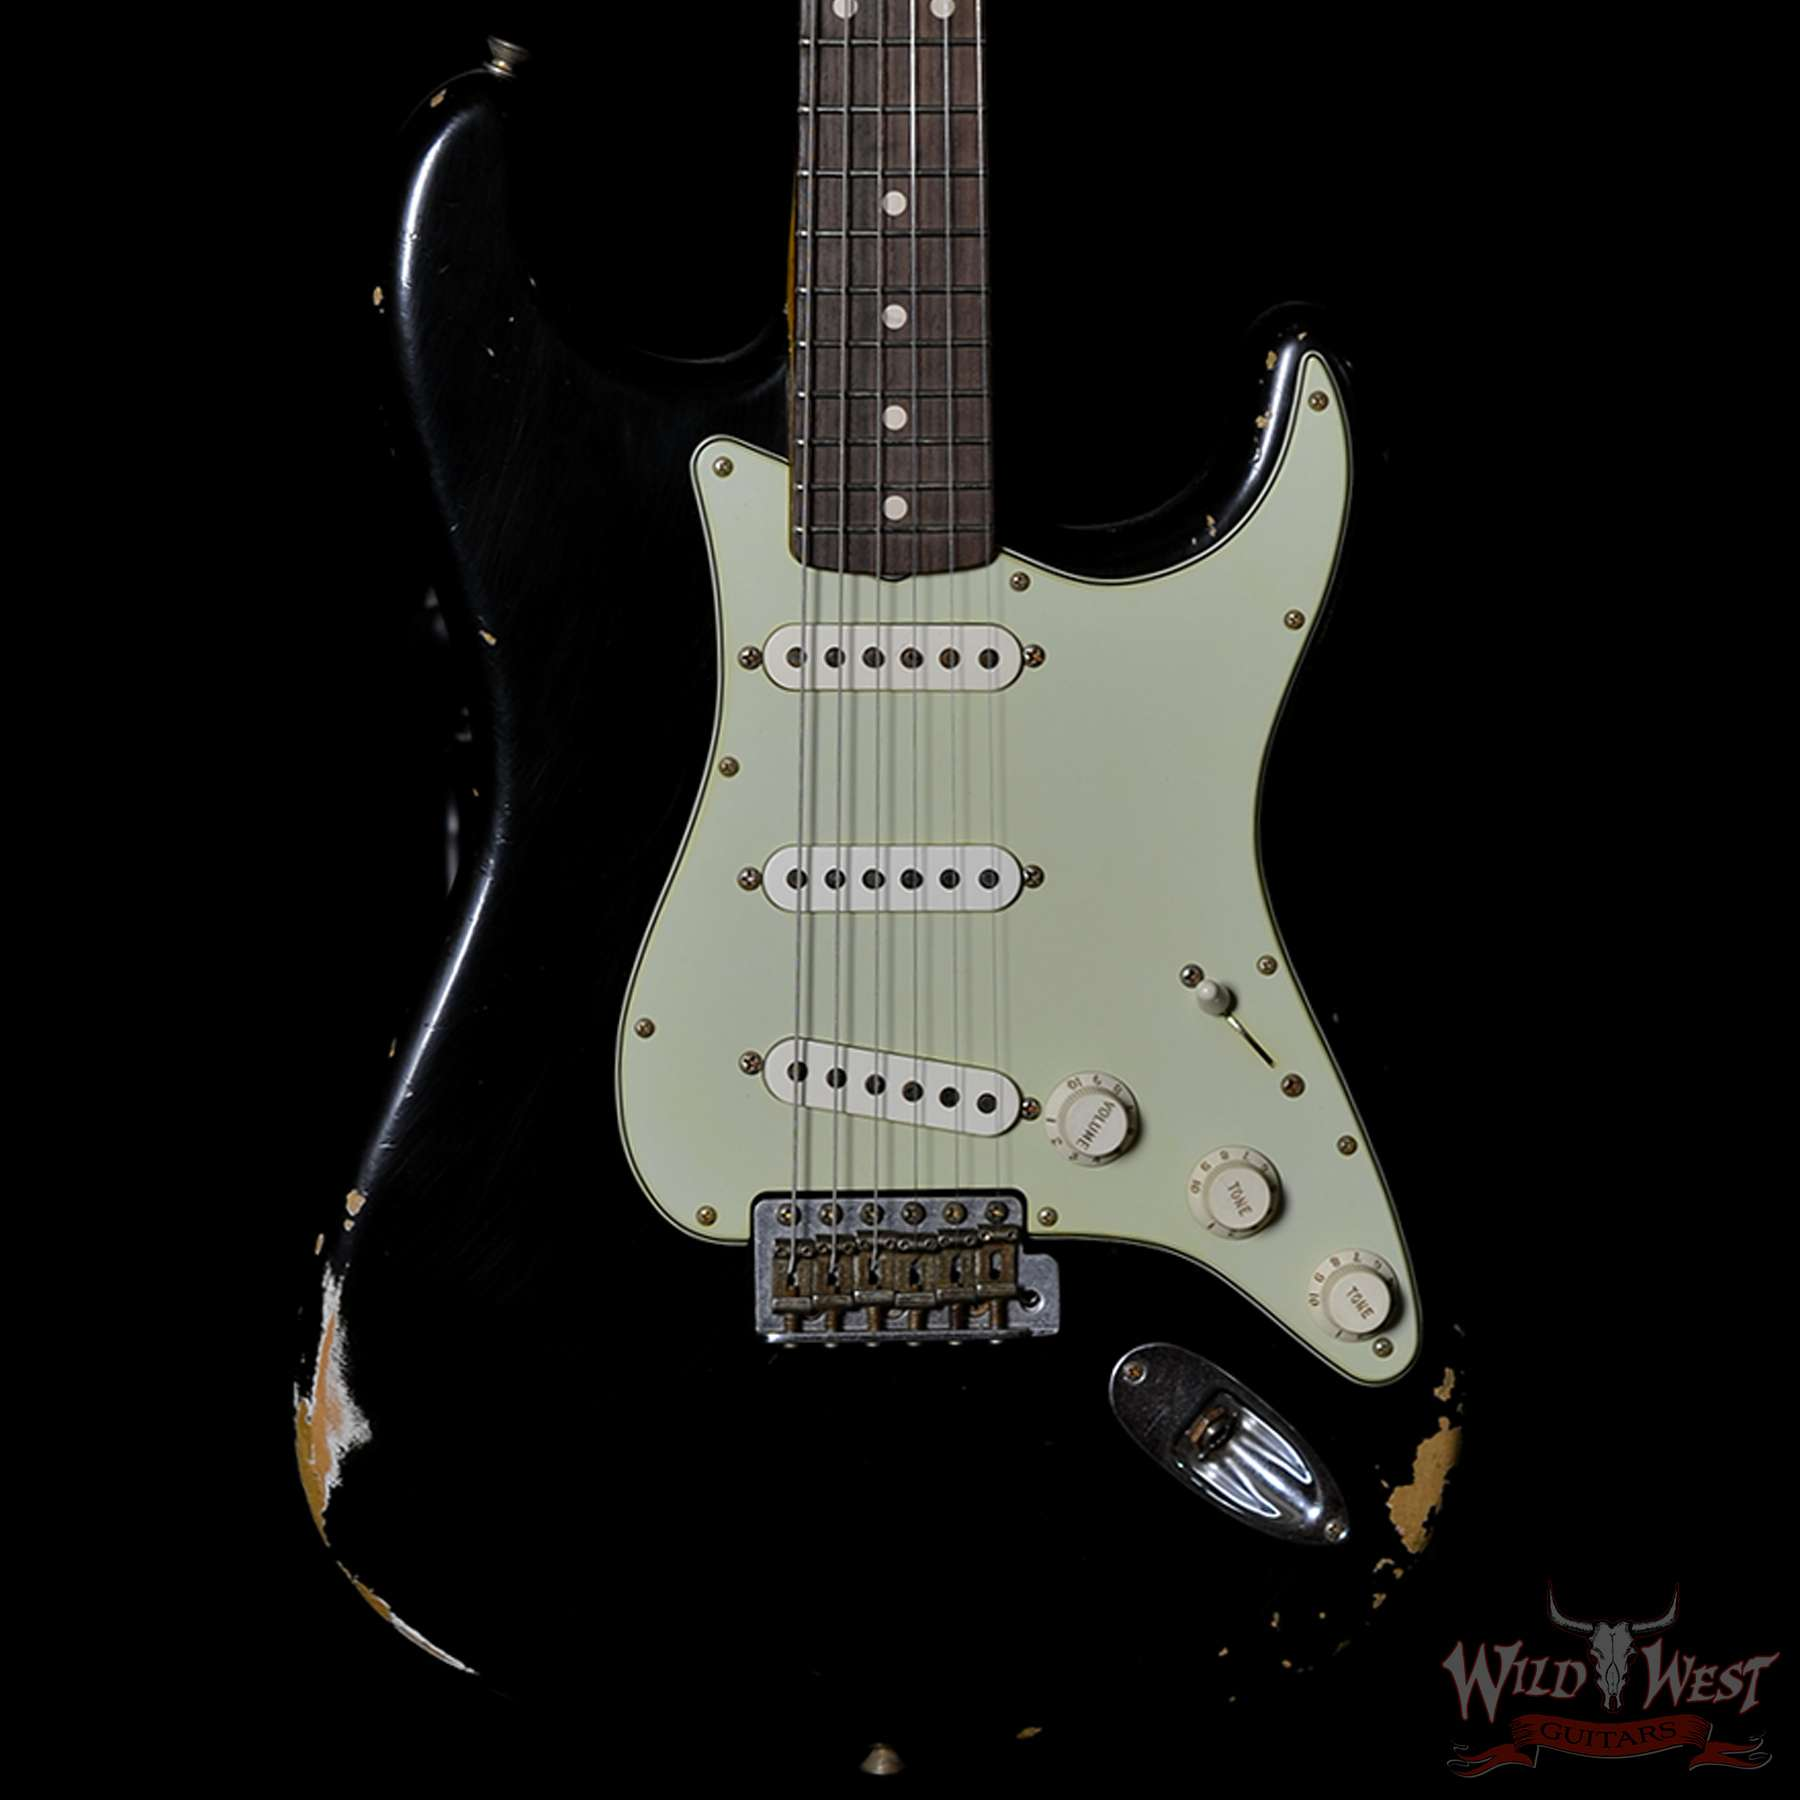 Fender Deluxe Roadhouse Hss Wiring Diagram | Wiring Diagram on fender stratocaster guitars, fender stratocaster tone controls explained, fender american deluxe stratocaster, fender stratocaster wiring-diagram, fender stratocaster schematic diagram,